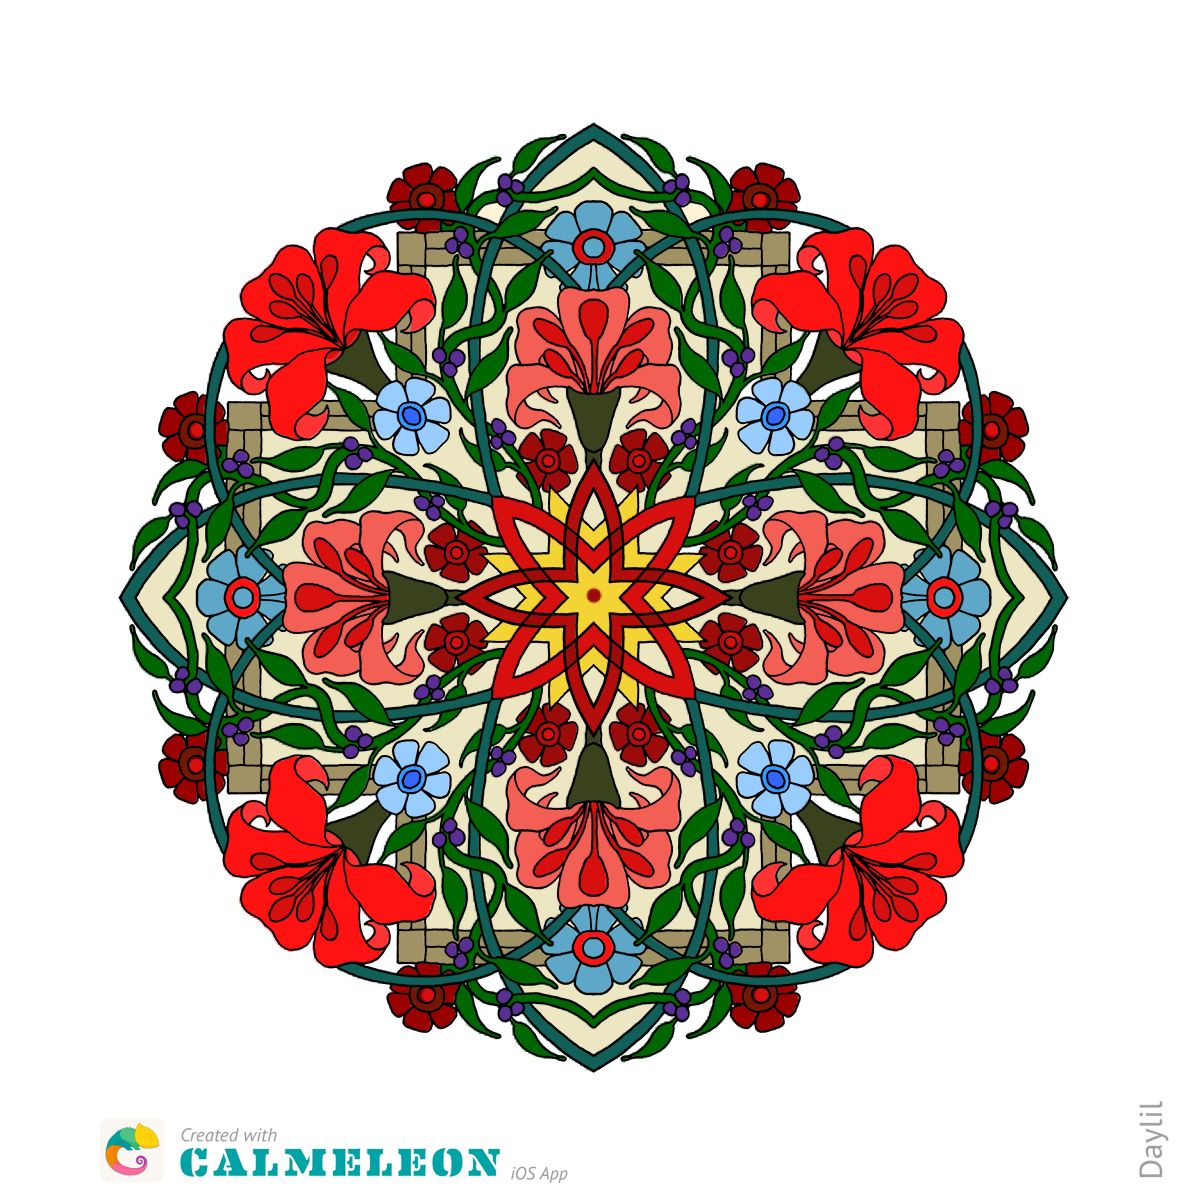 Calmeleon Coloring Book For Adults On The App Store